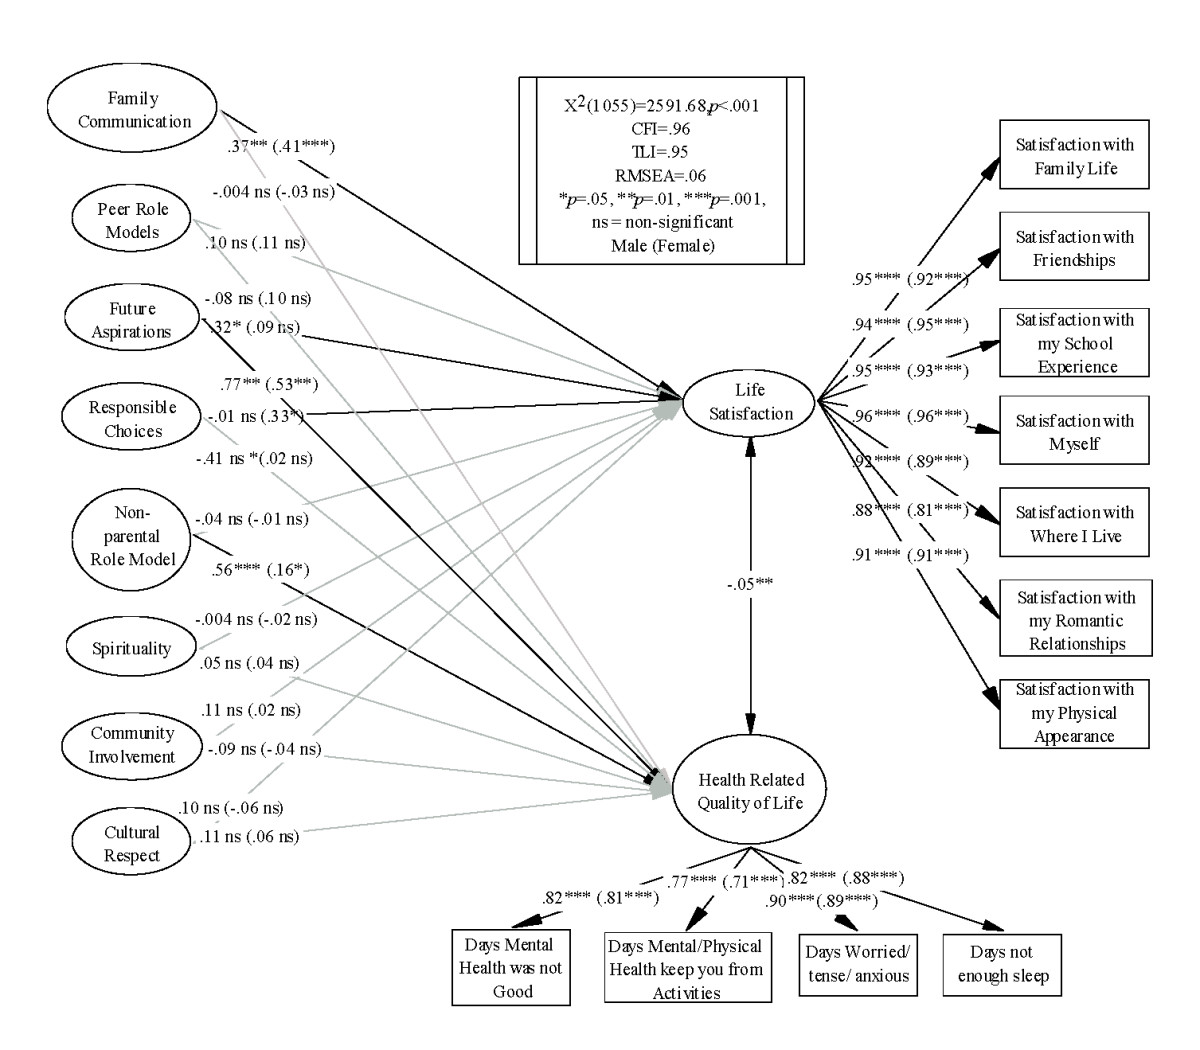 http://static-content.springer.com/image/art%3A10.1186%2F1477-7525-9-52/MediaObjects/12955_2011_Article_828_Fig2_HTML.jpg